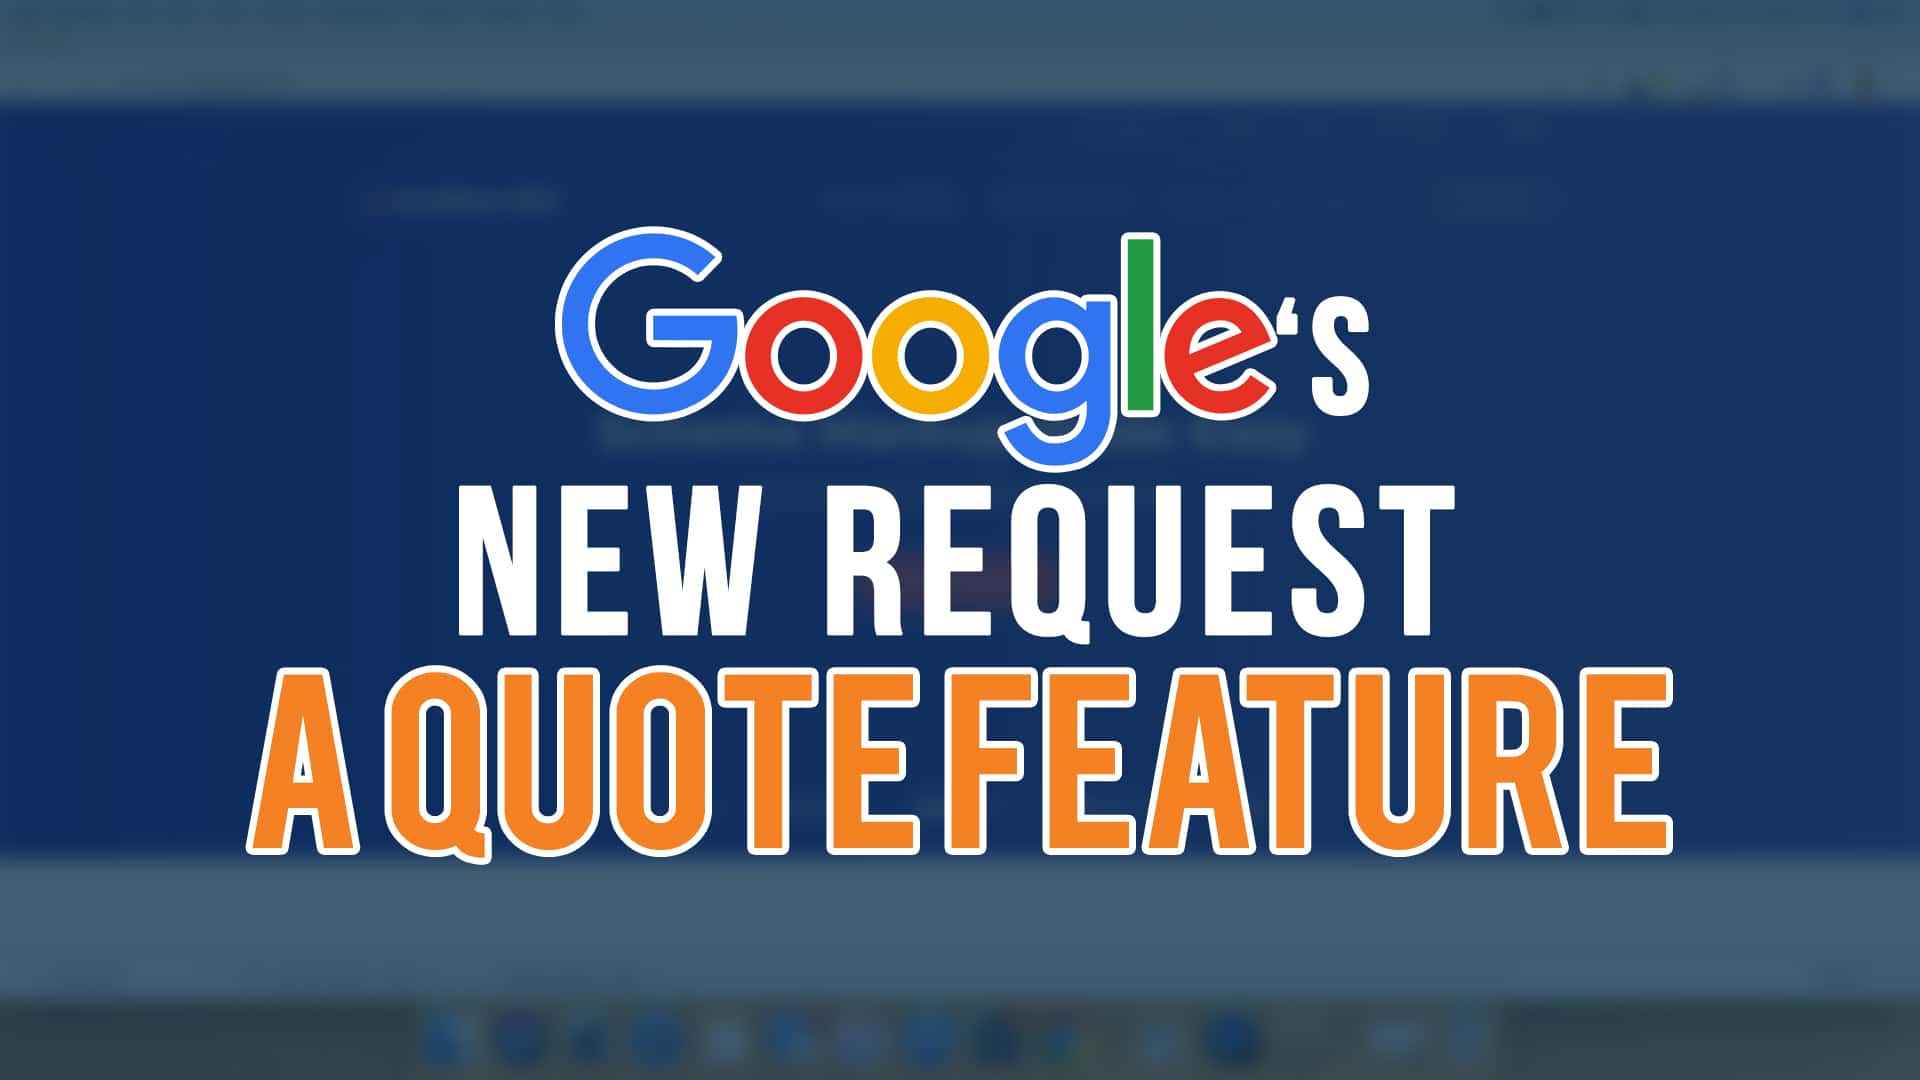 Google's New Request A Quote Feature